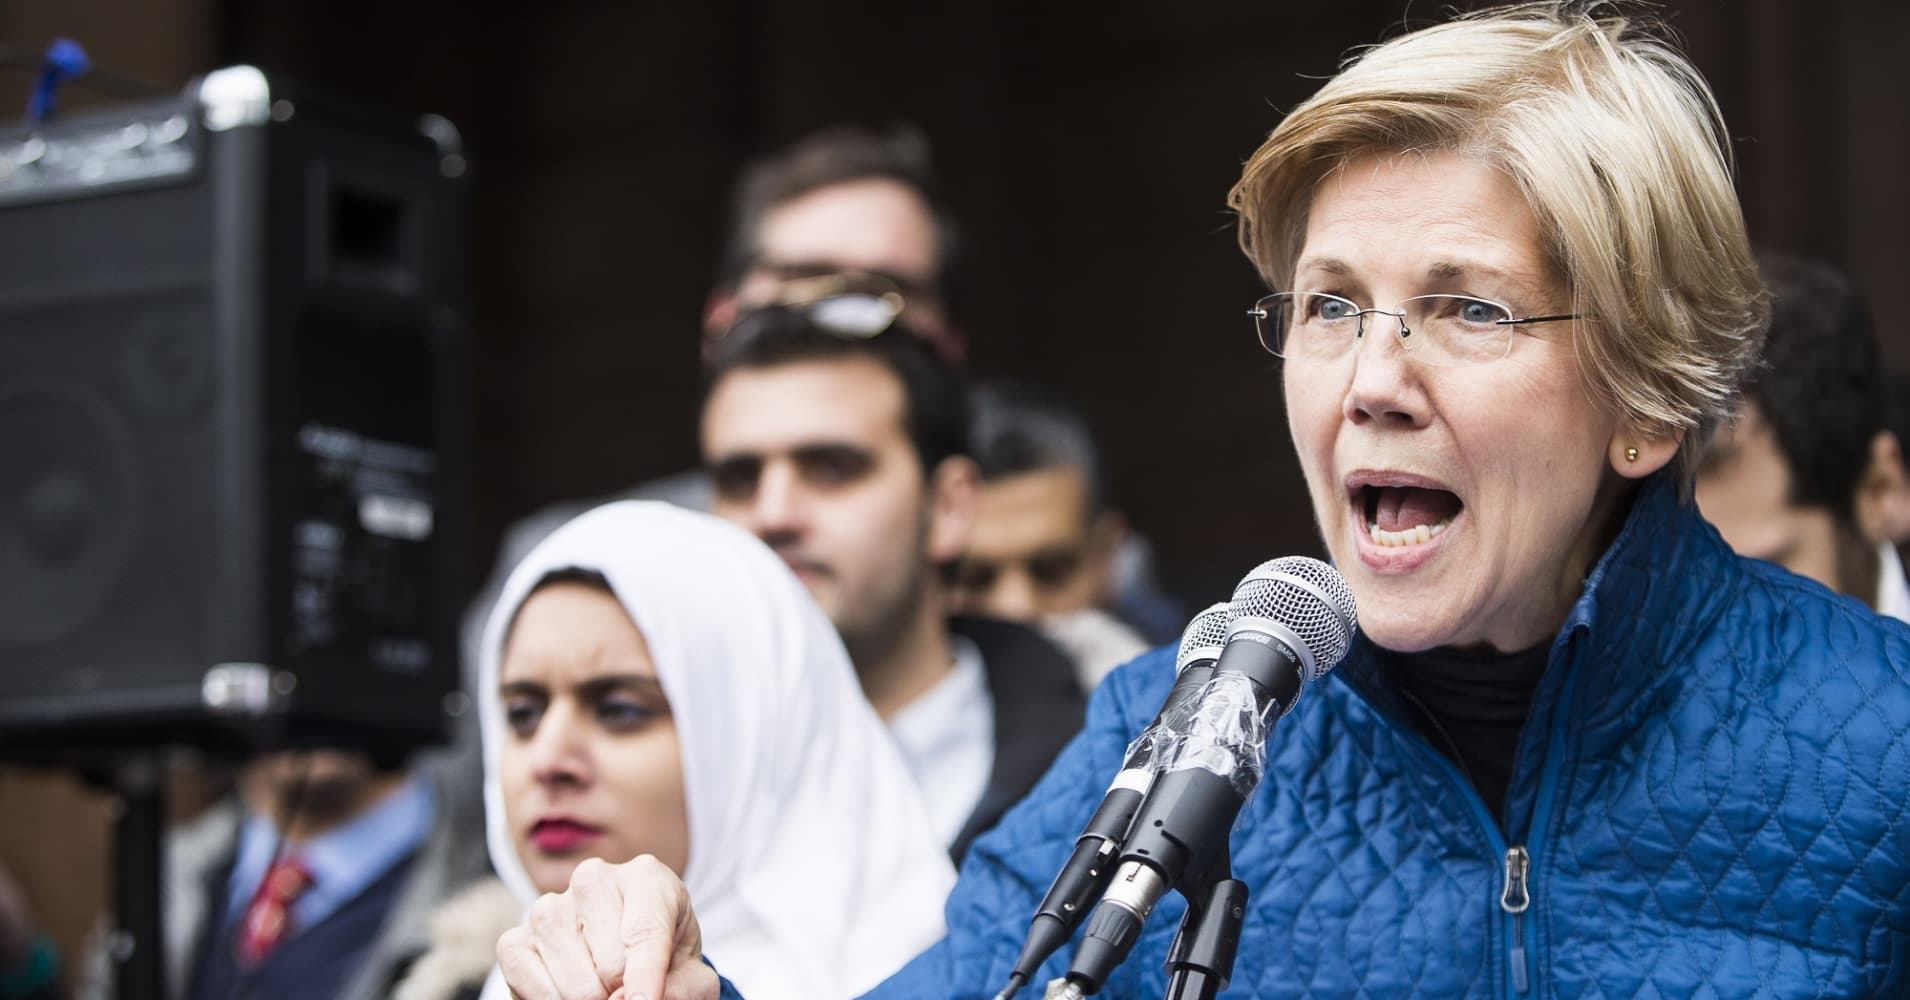 Senator Elizabeth Warren speaks during a protest in Copley Square in Boston on Jan. 29, 2017. Thousands gathered to protest President Donald Trump's executive order banning people from several predominantly Muslim countries from entering the country.